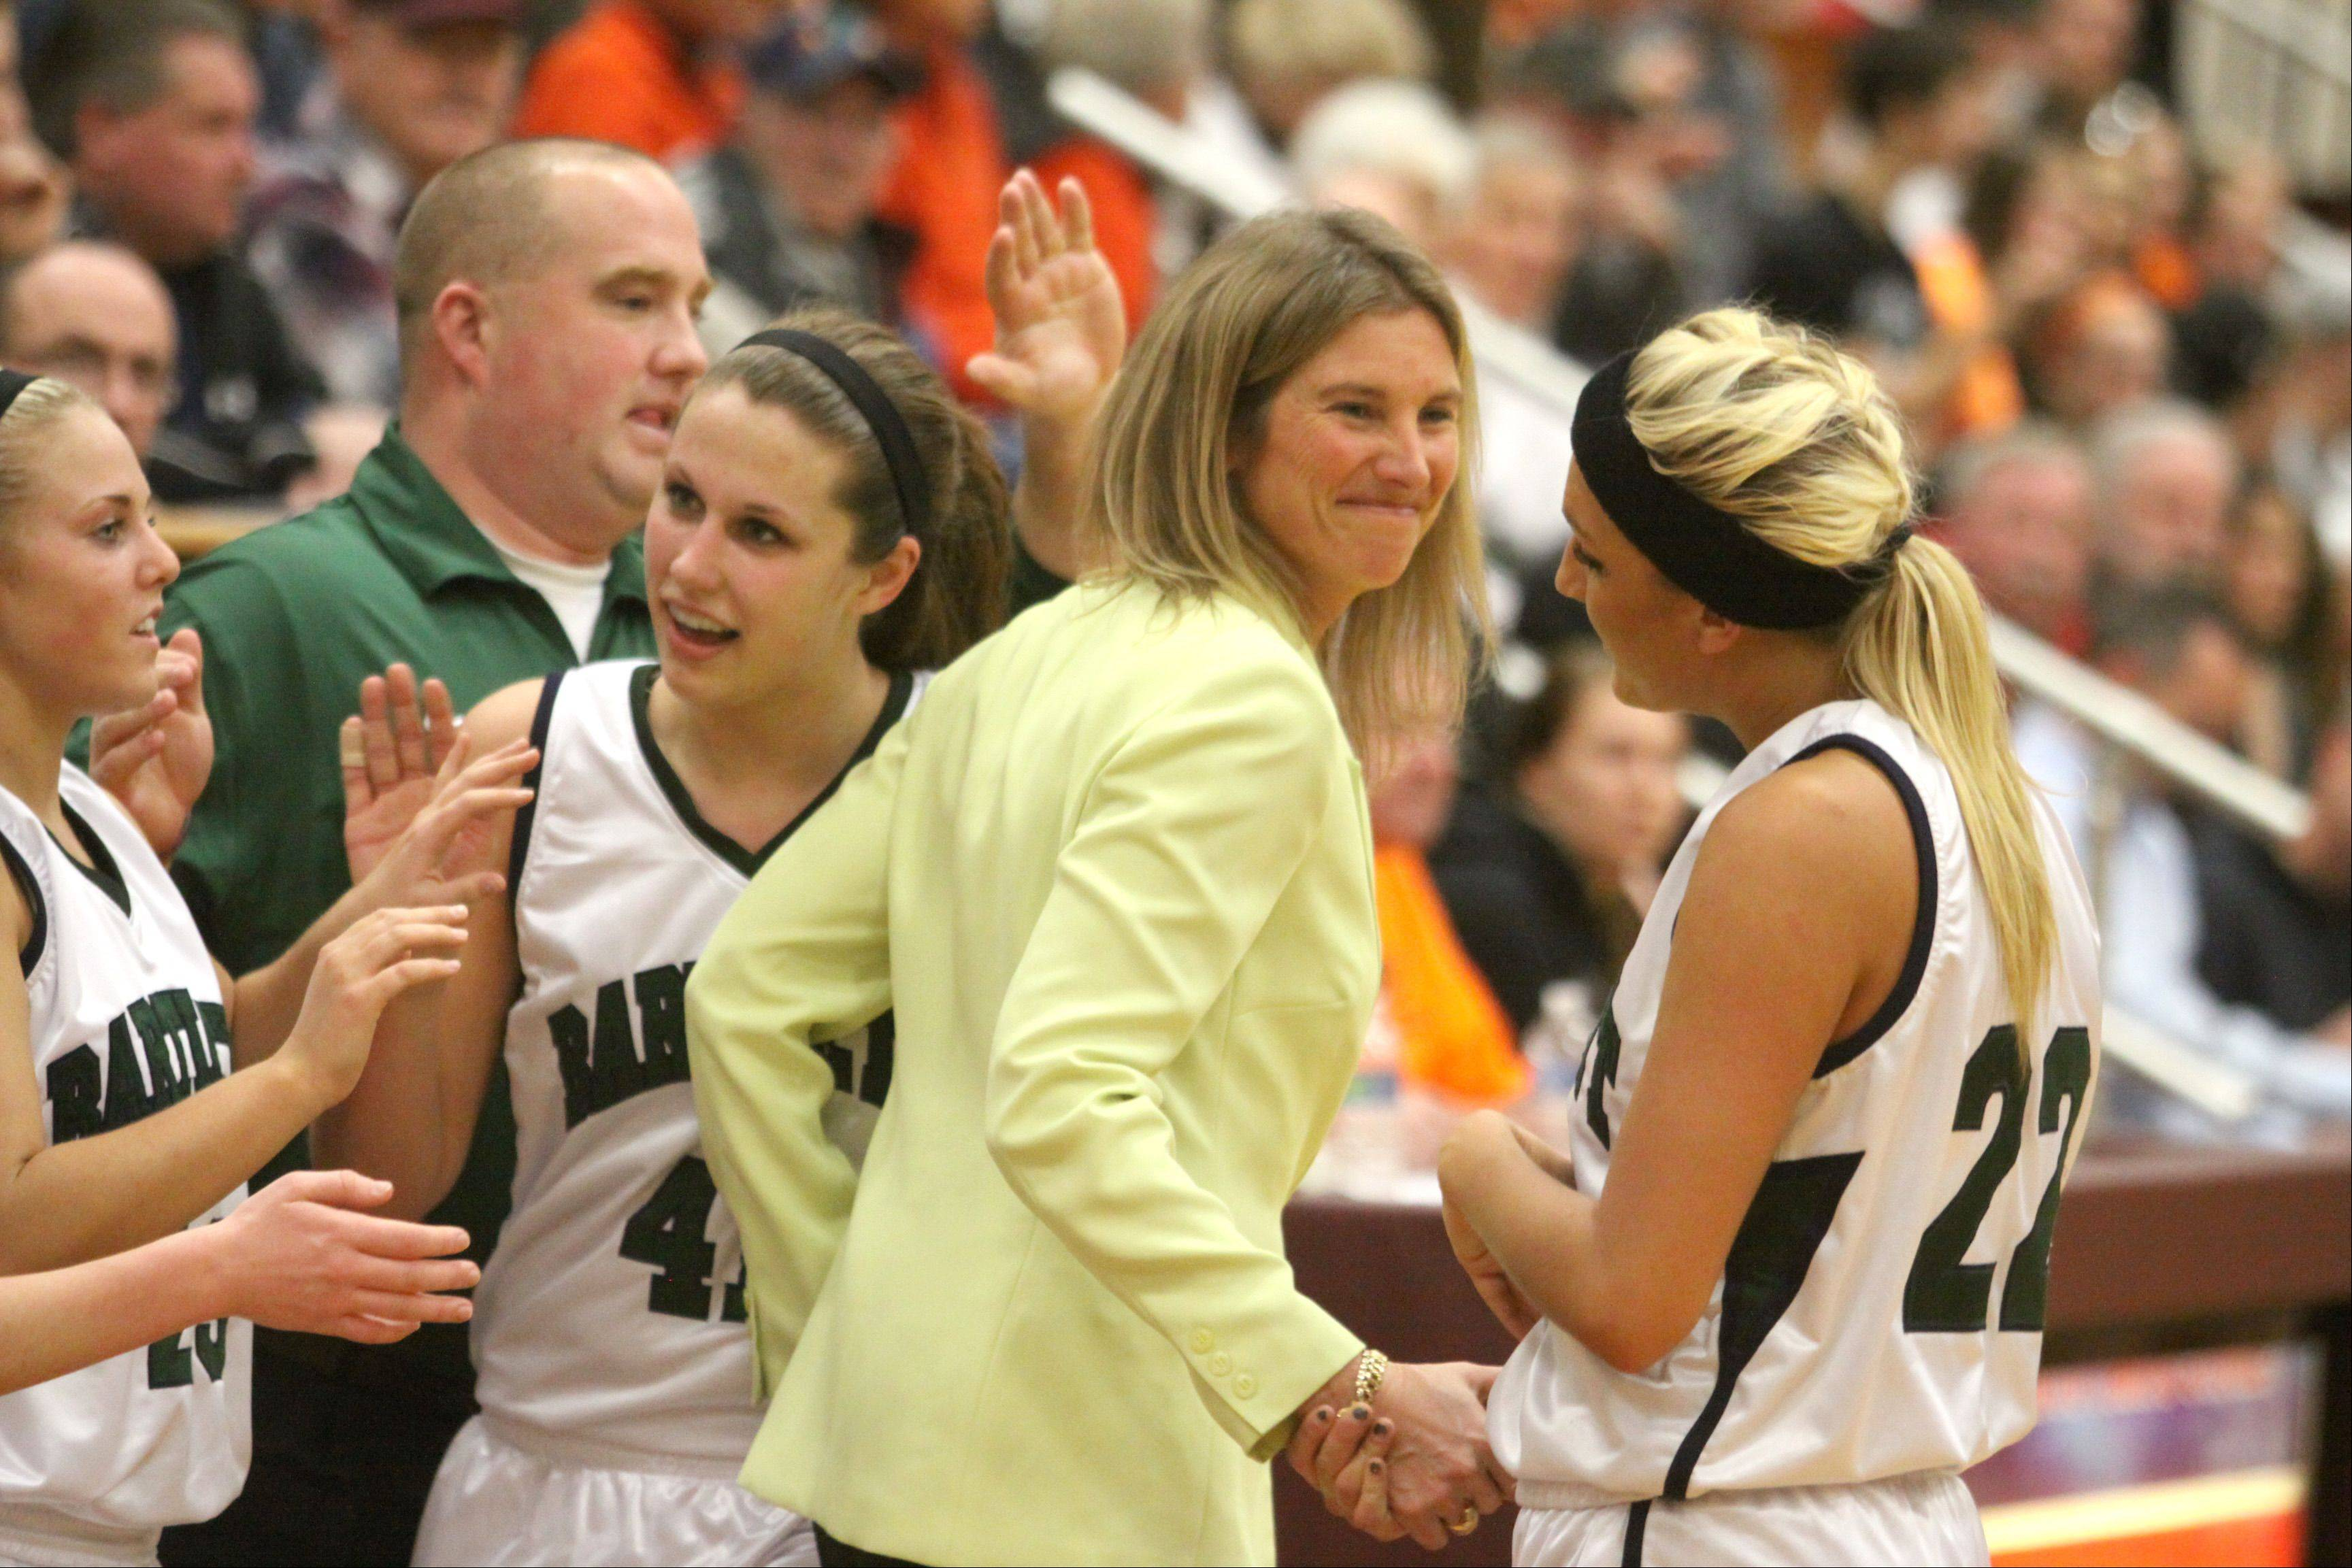 Bartlett head coach Denise Sarna, center, offers congratulations to her starters as they exit the game late in a supersectional win over DeKalb at Chesbrough Field House in Elgin on Monday night. At right is Haley Videckis, and at left is Lisa Palmer.